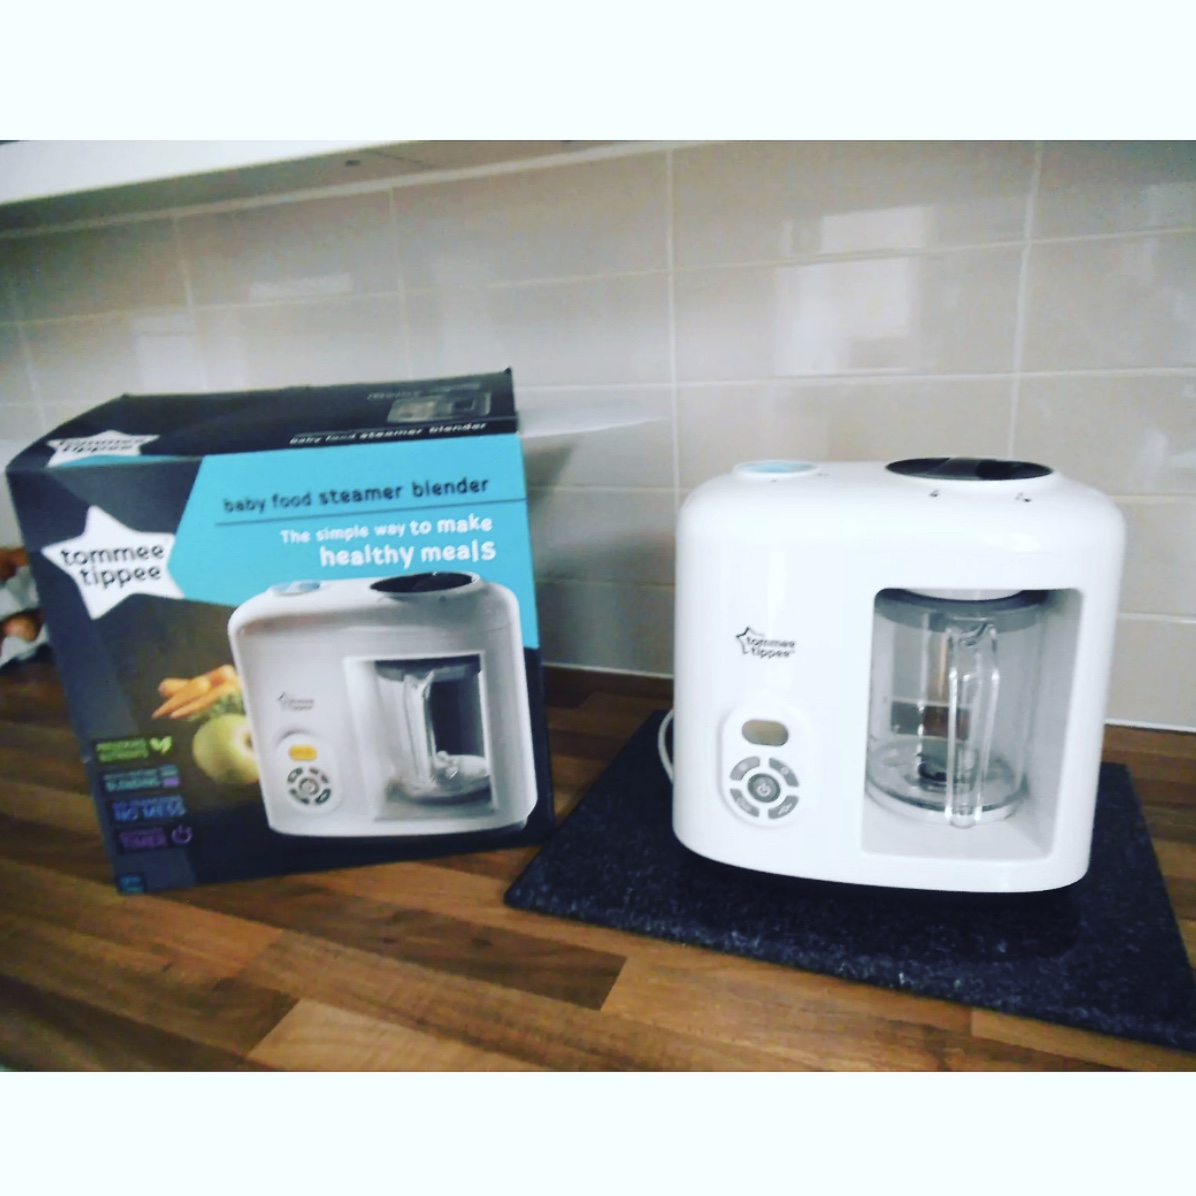 Immaculate Condition Tommee Tippee Baby Food Steamer